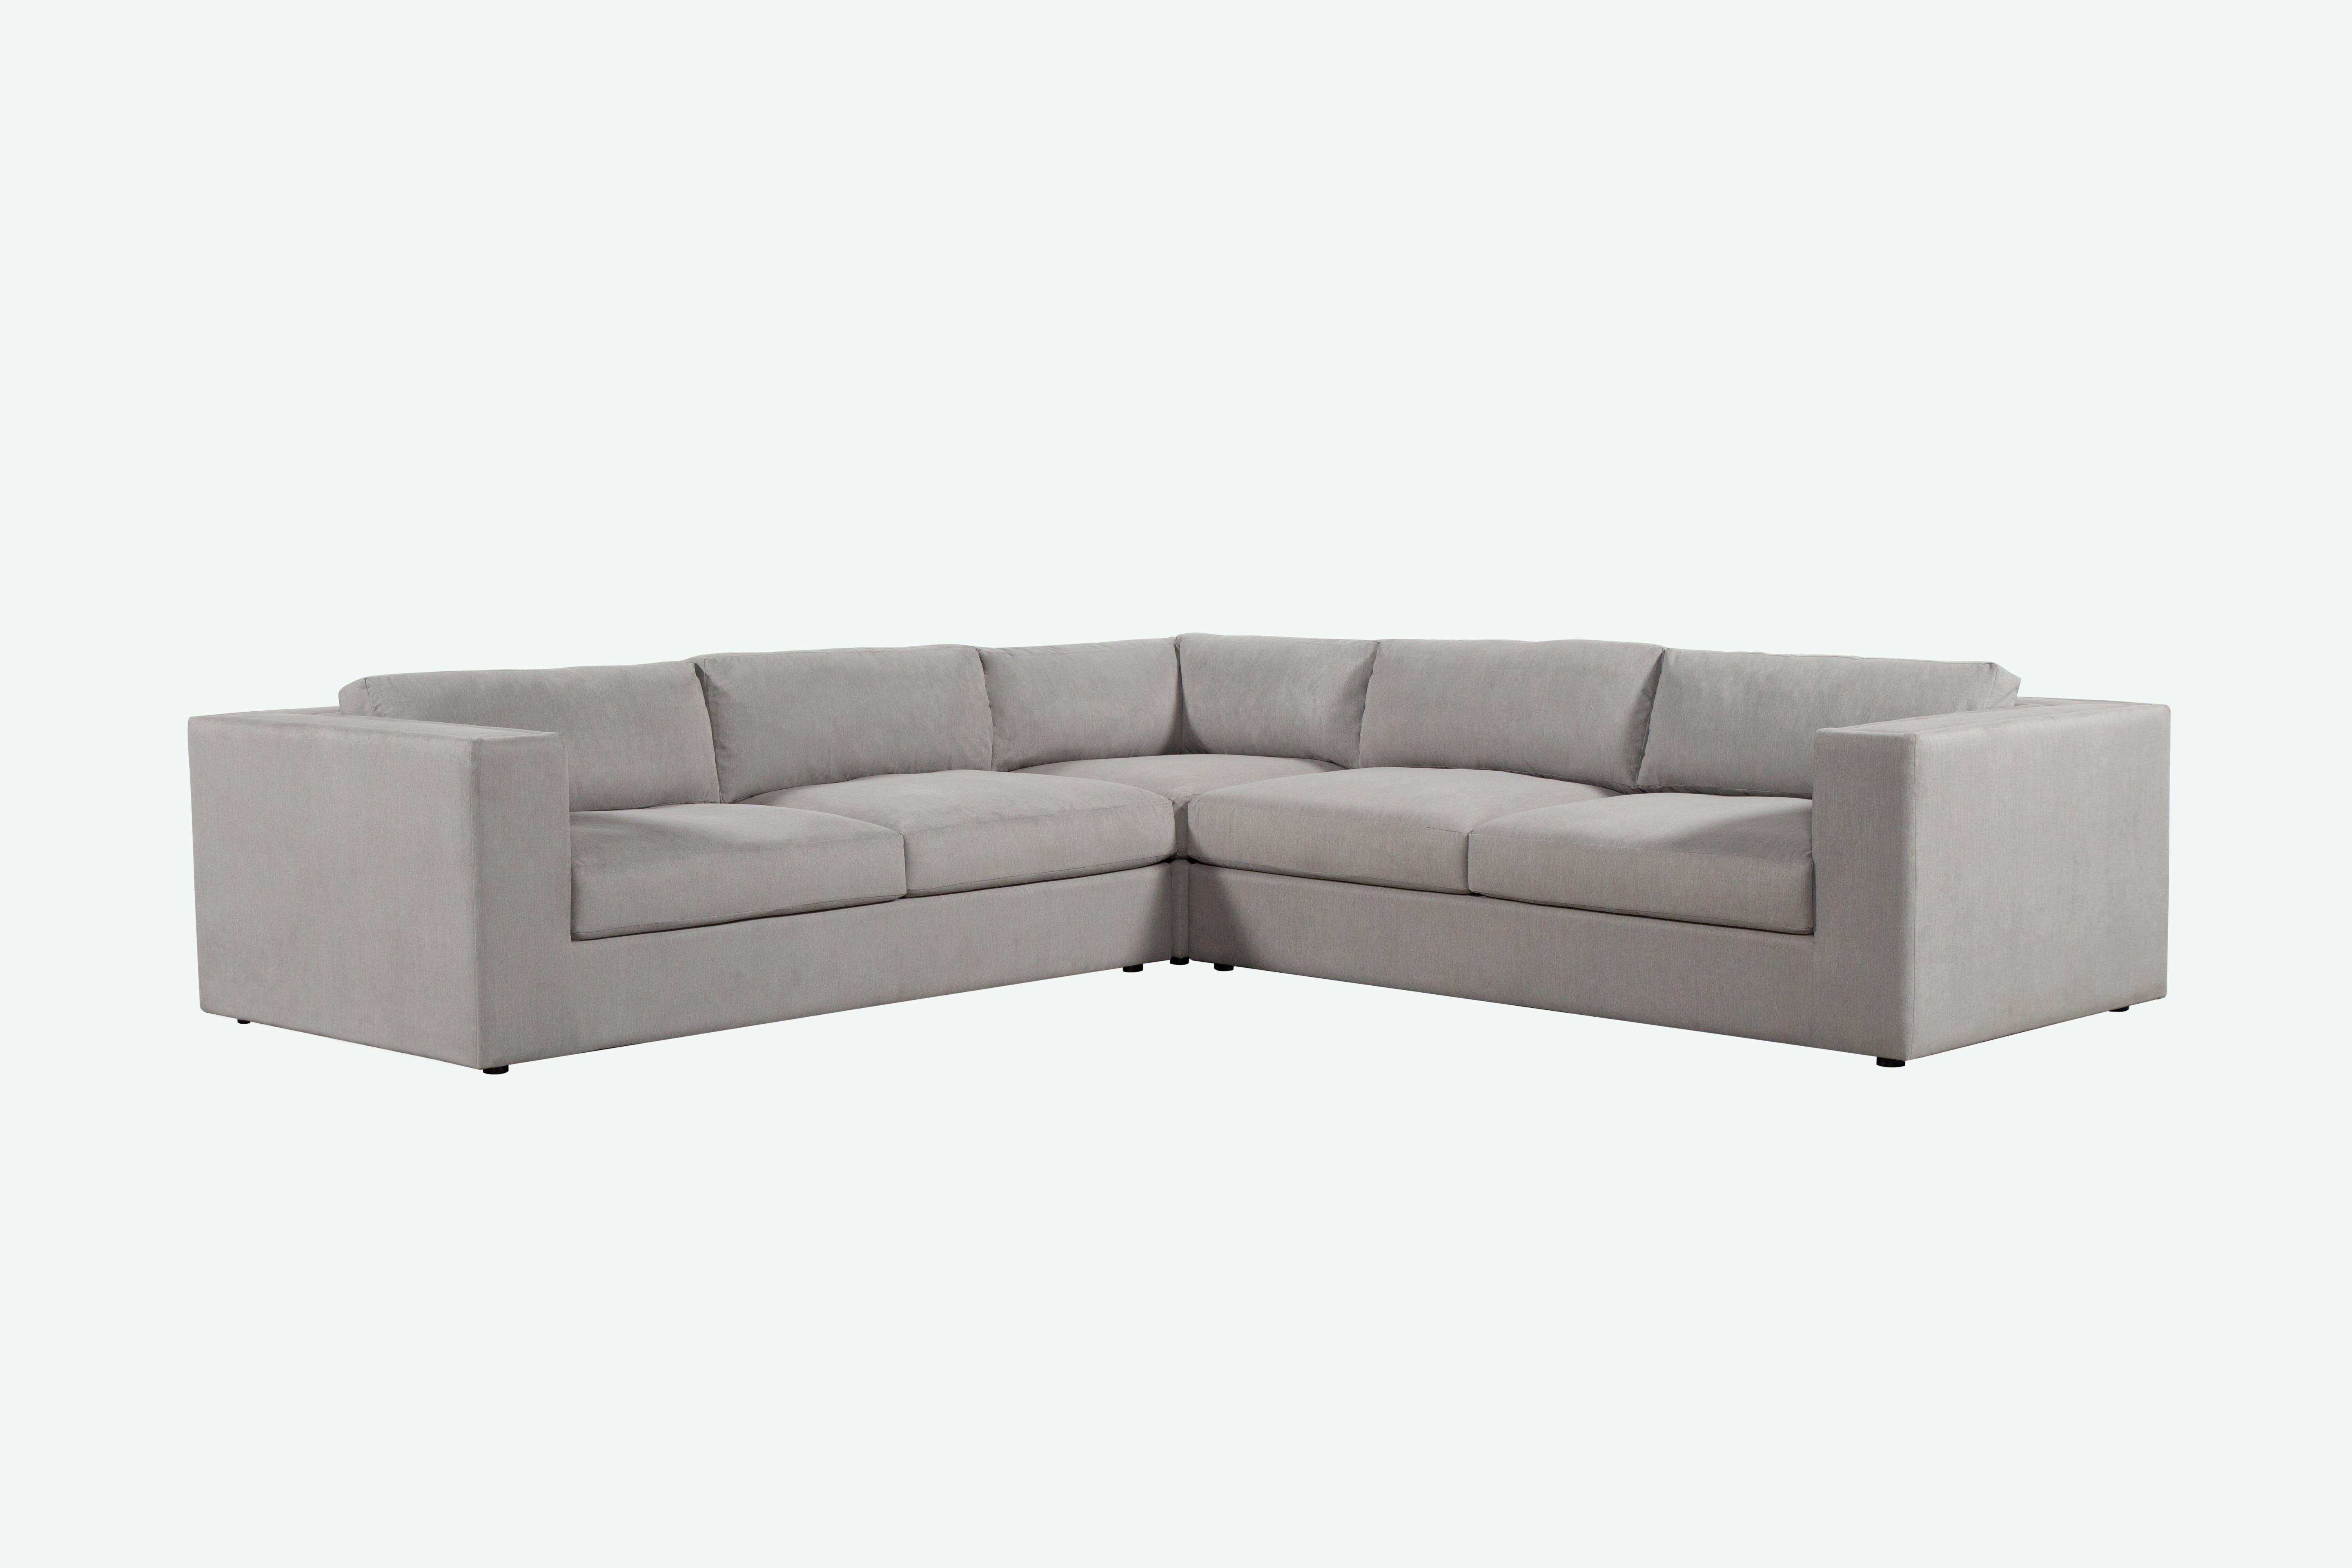 Nate Berkus Just Launched A Home Collection With Hubby Jeremiah Pertaining To Most Current Soane 3 Piece Sectionals By Nate Berkus And Jeremiah Brent (View 7 of 20)